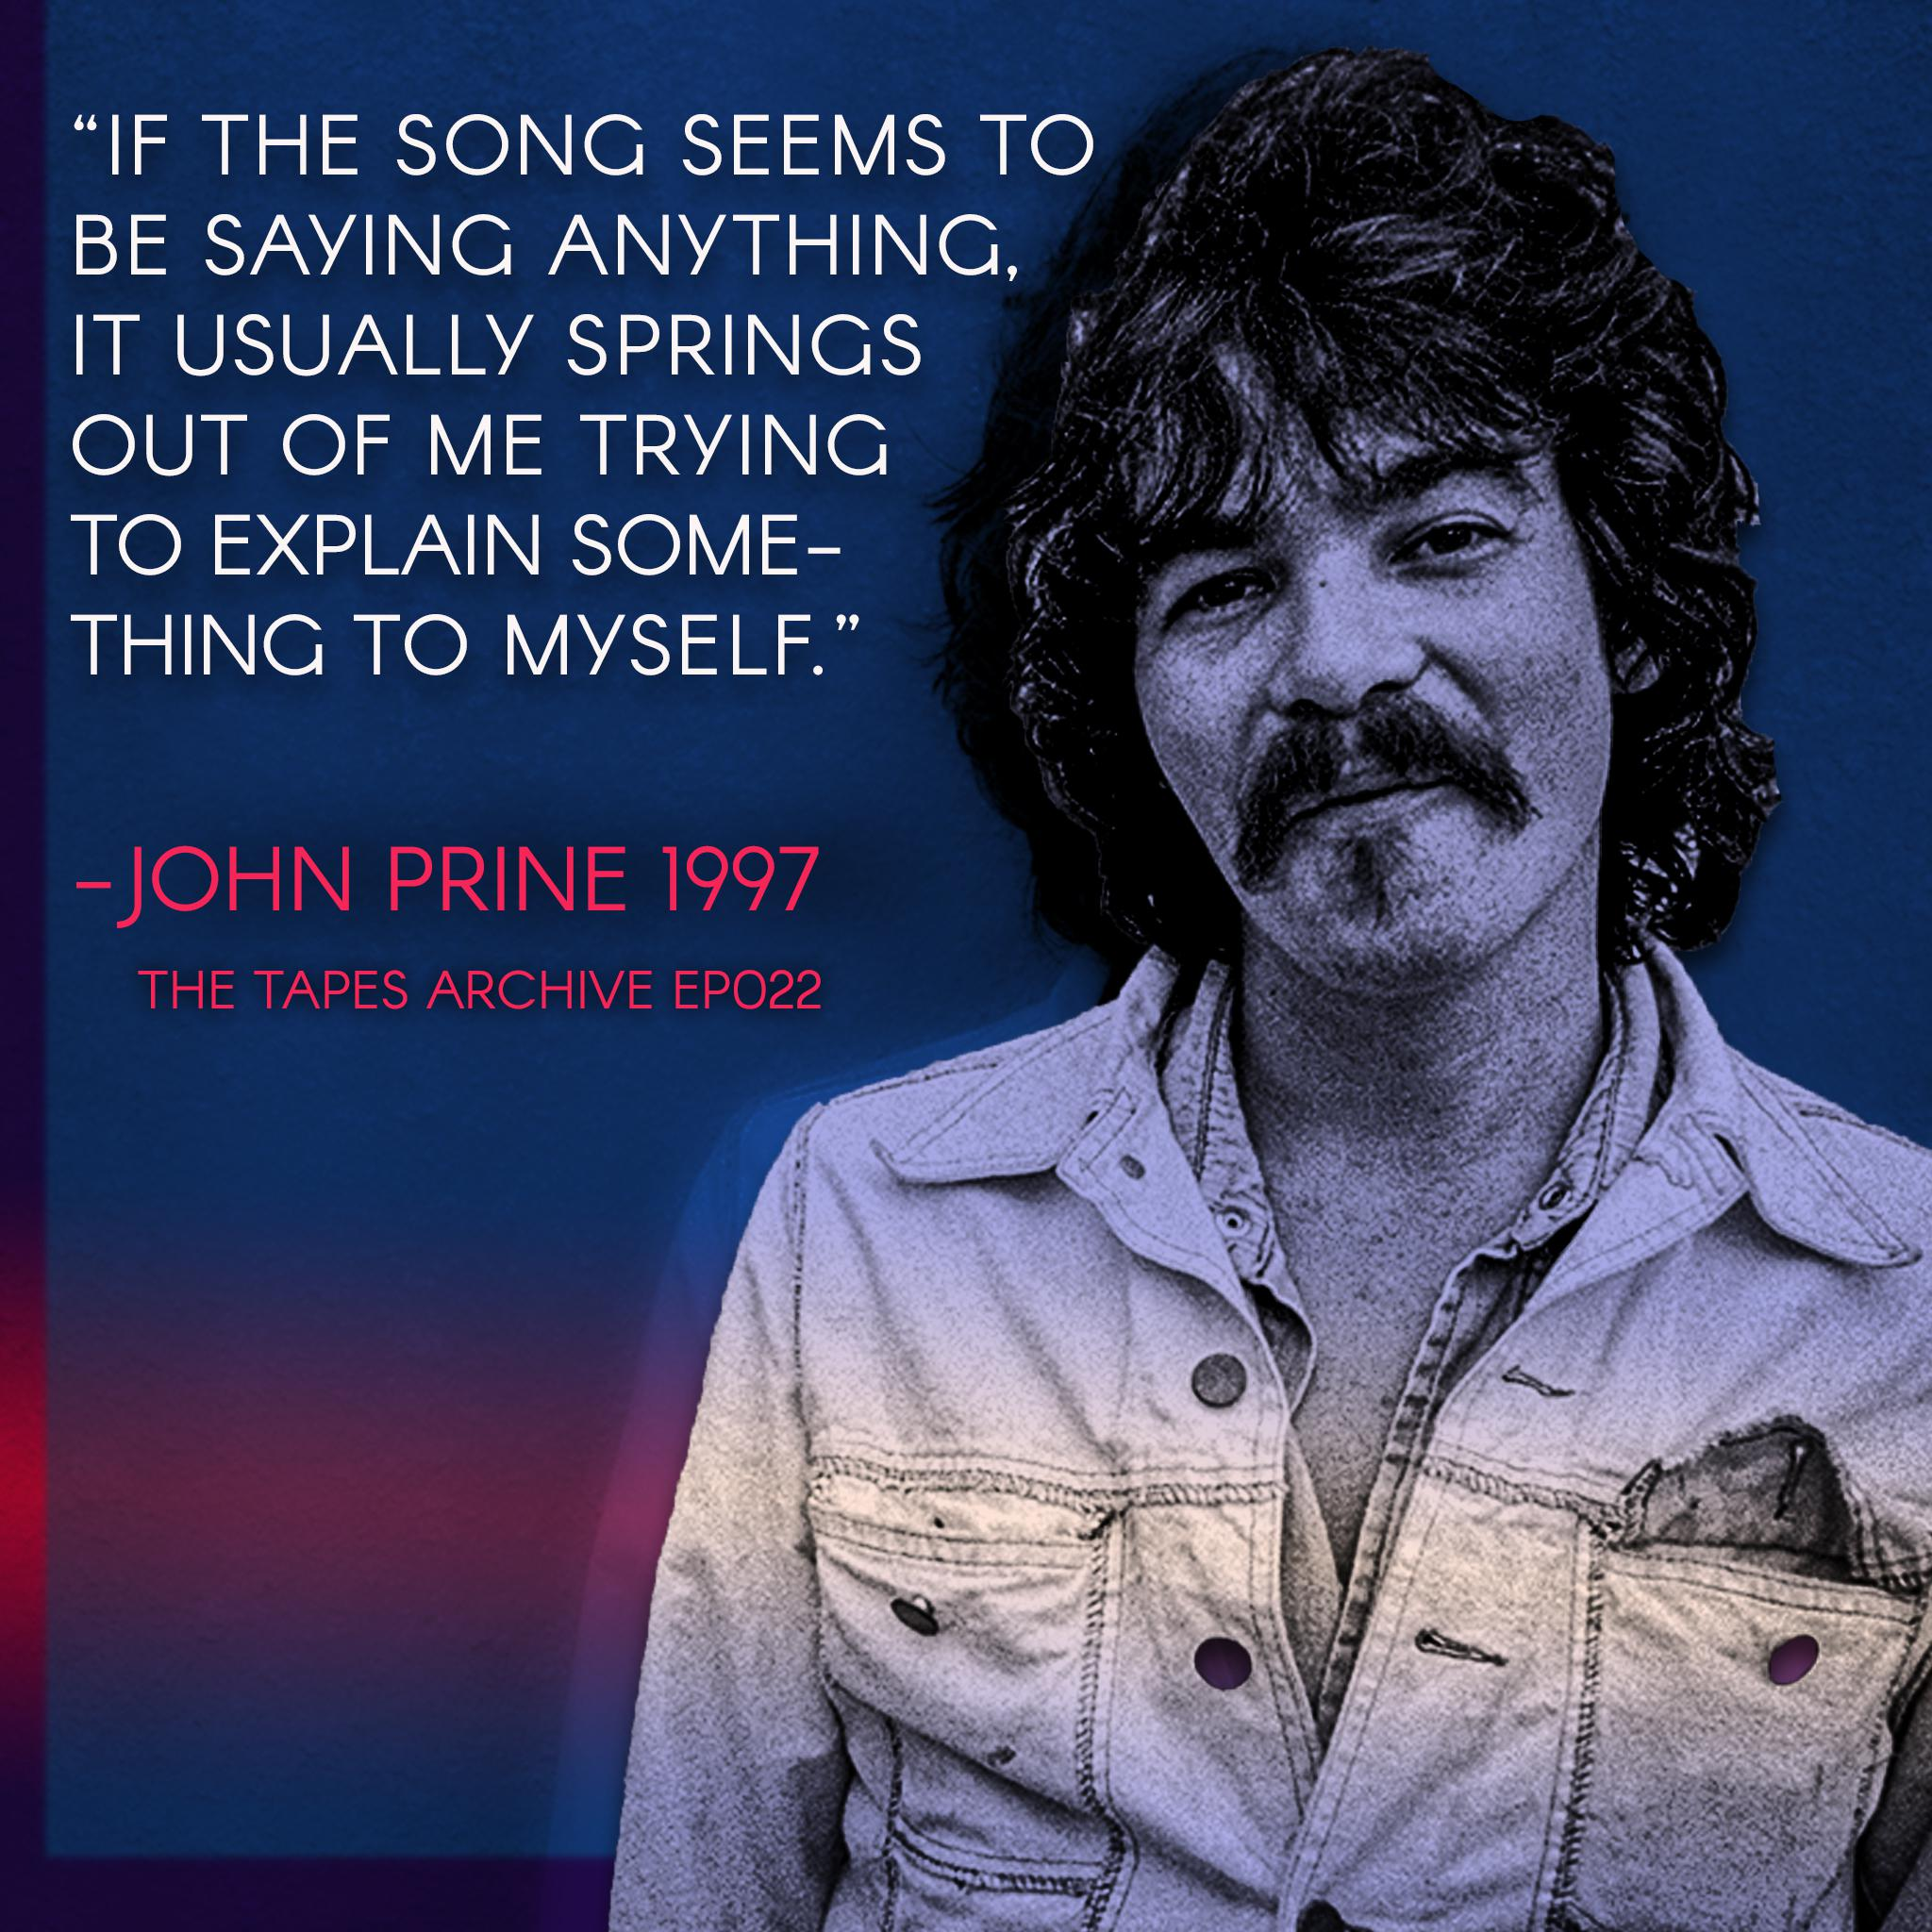 """If the song seems to be saying anything, it usually springs out of me trying to explain something to myself"" – John Prine 1997 [2048X2048]"